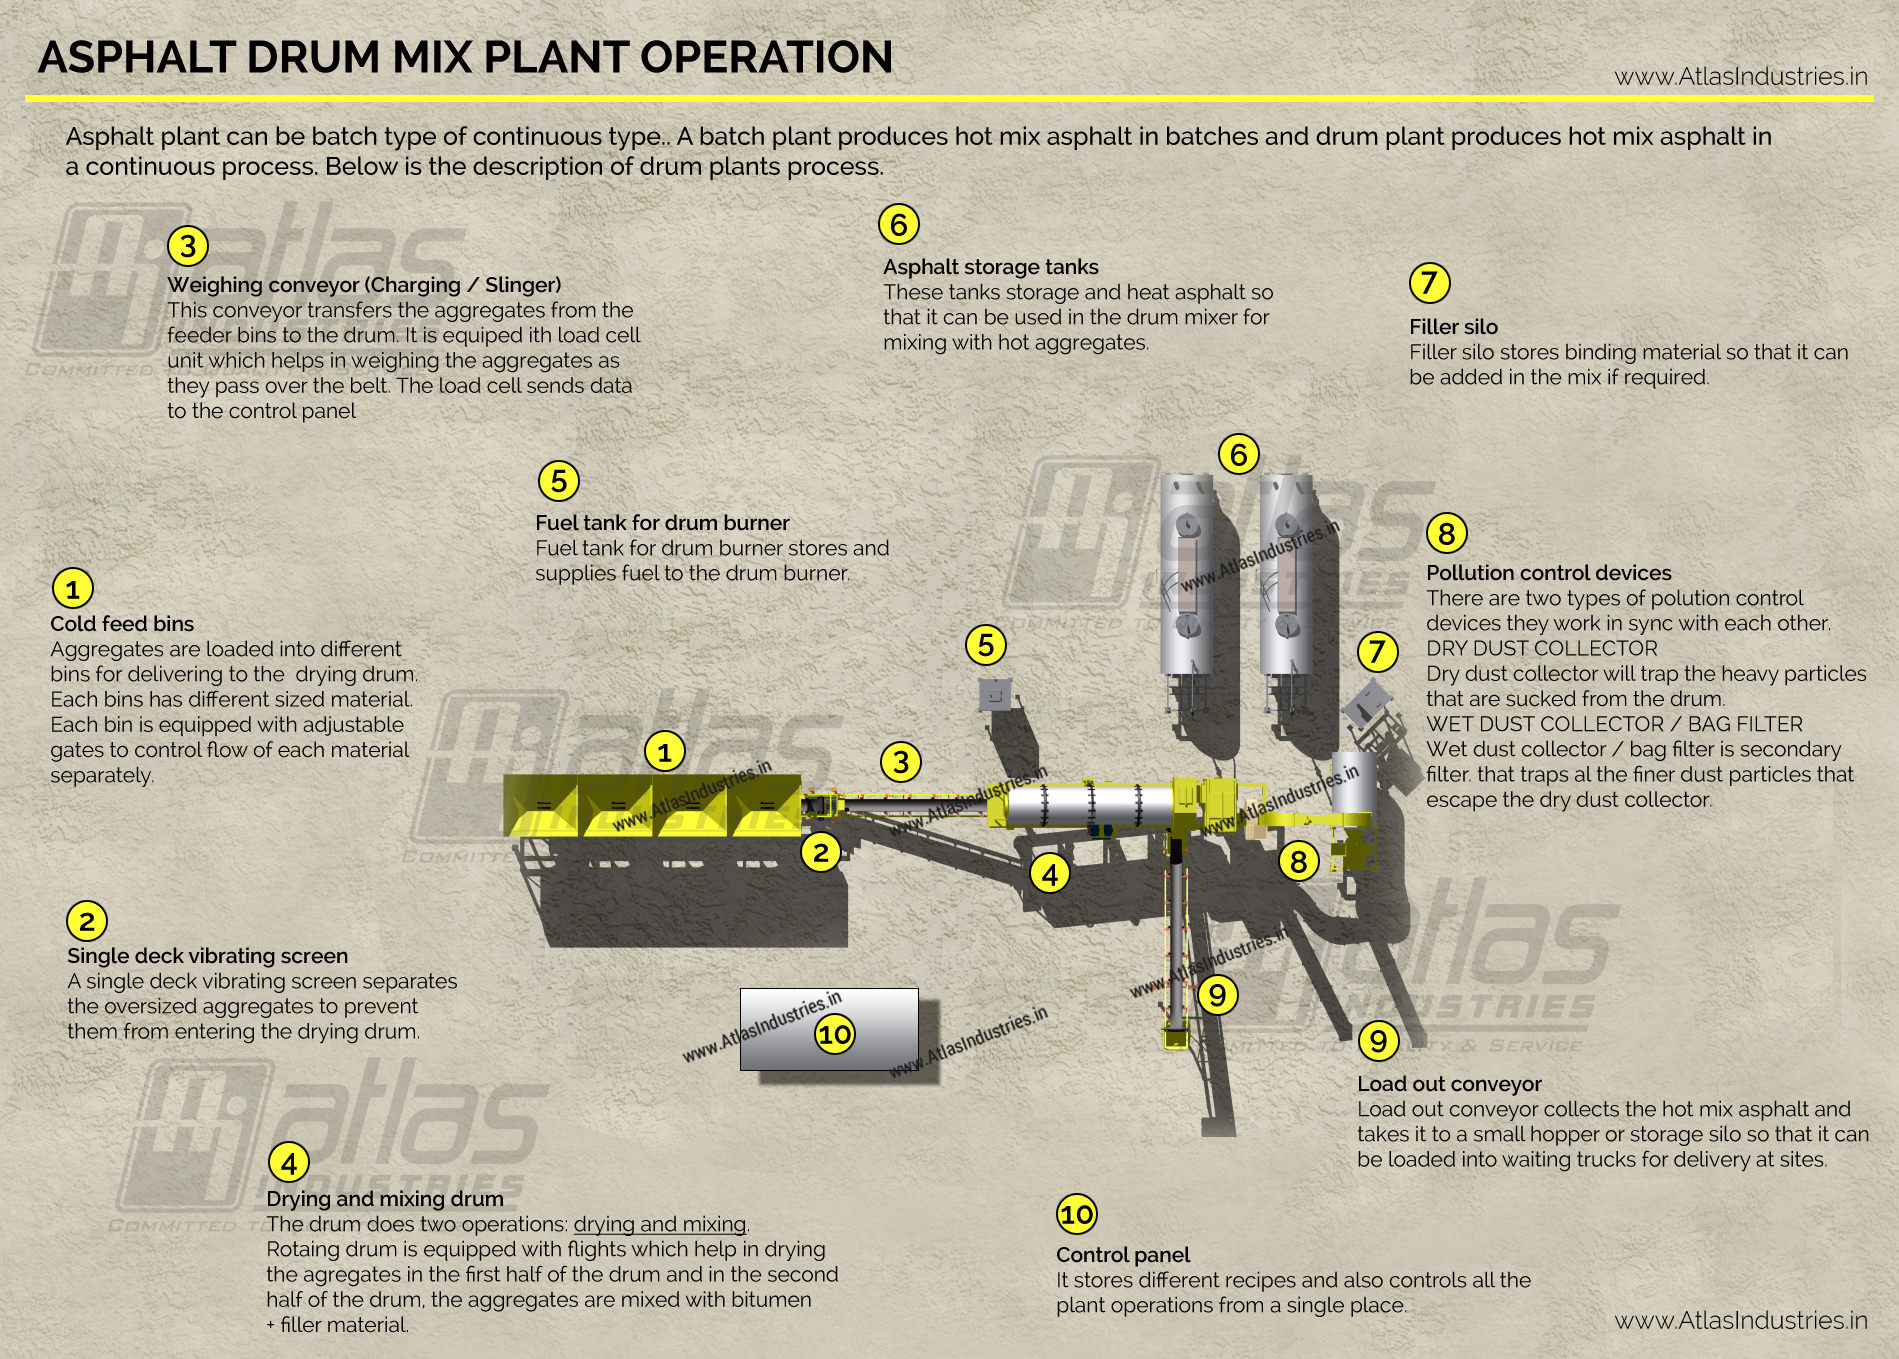 Asphalt drum mix plant process | Asphalt plant process